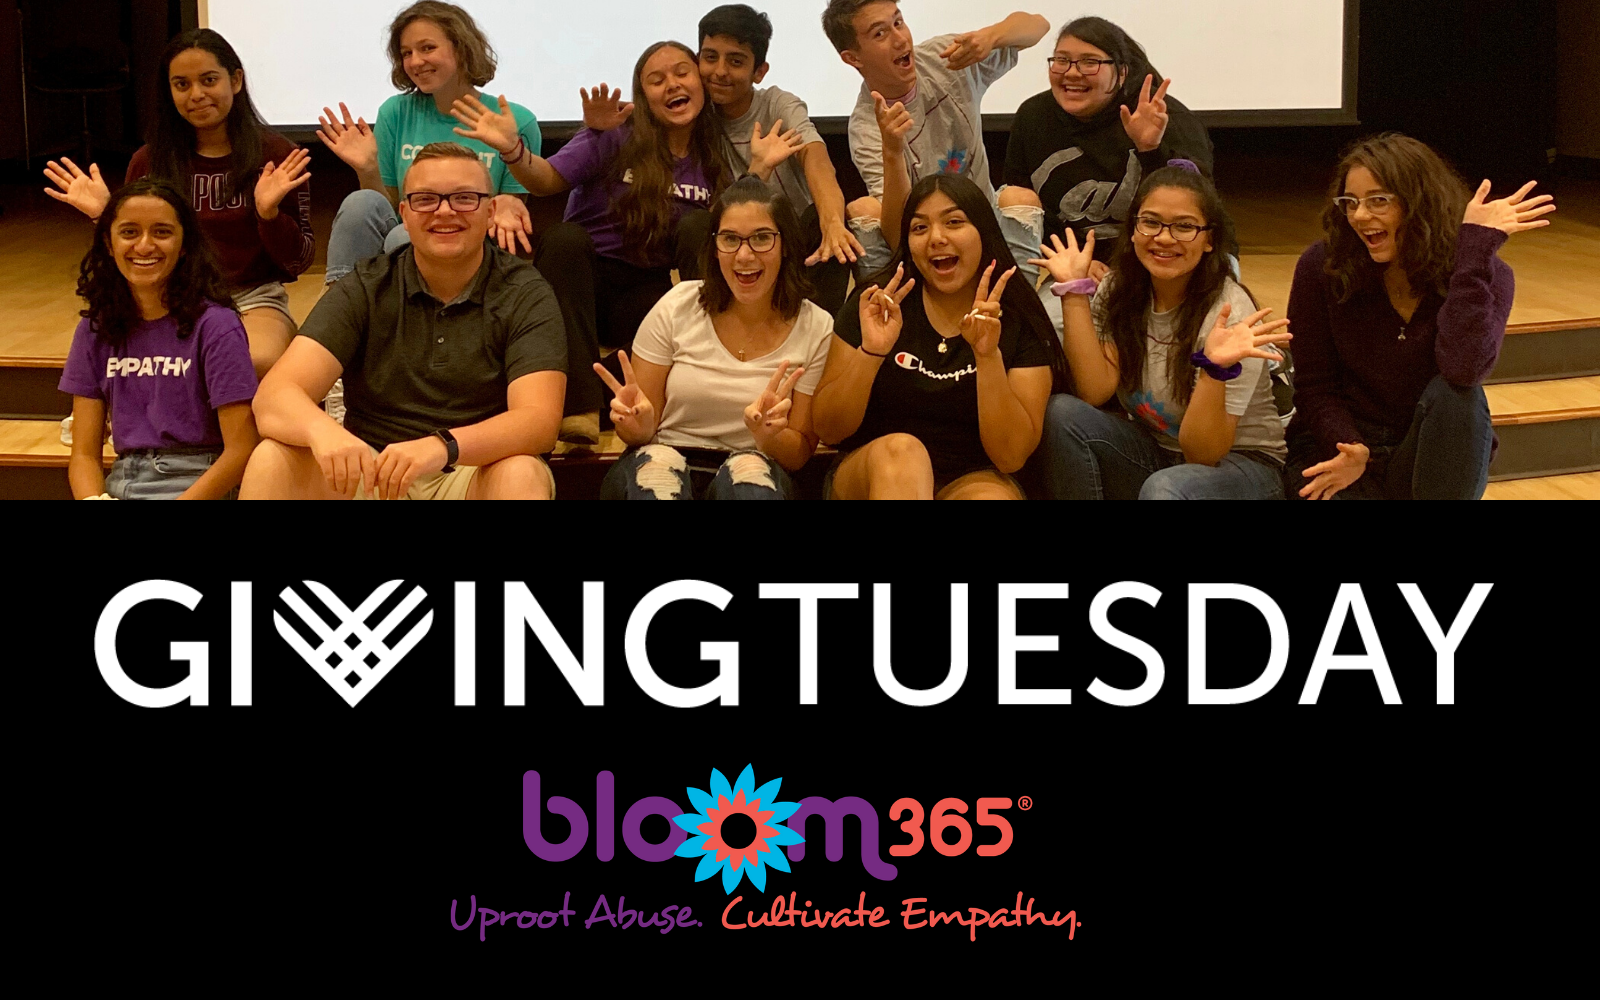 Will you help us #UprootAbuse in a generation by donating to our #GivingTuesday Campaign? image